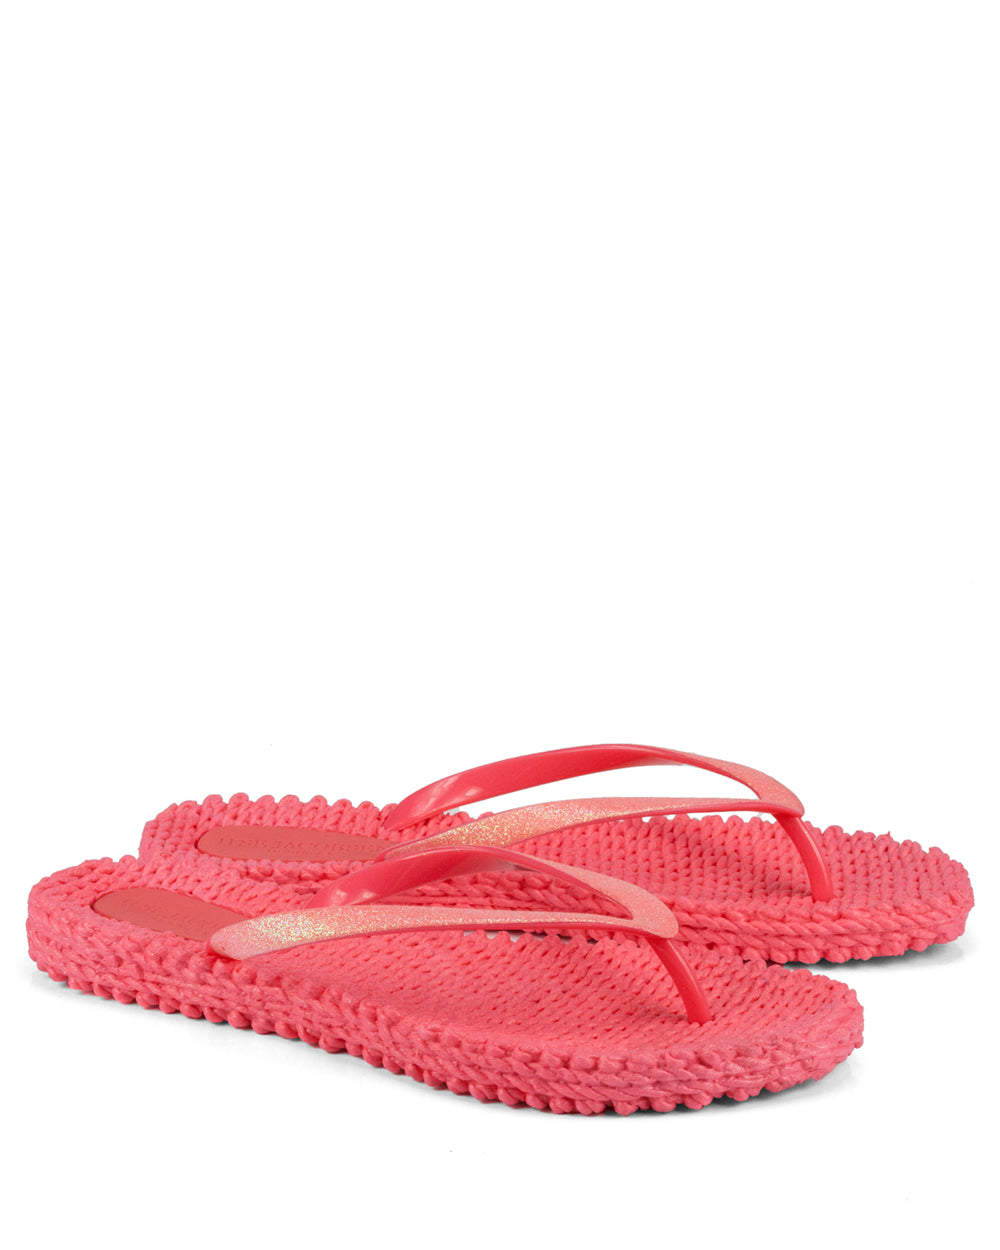 Cheerful Indian Red Flipflops - The Espadrille Hut